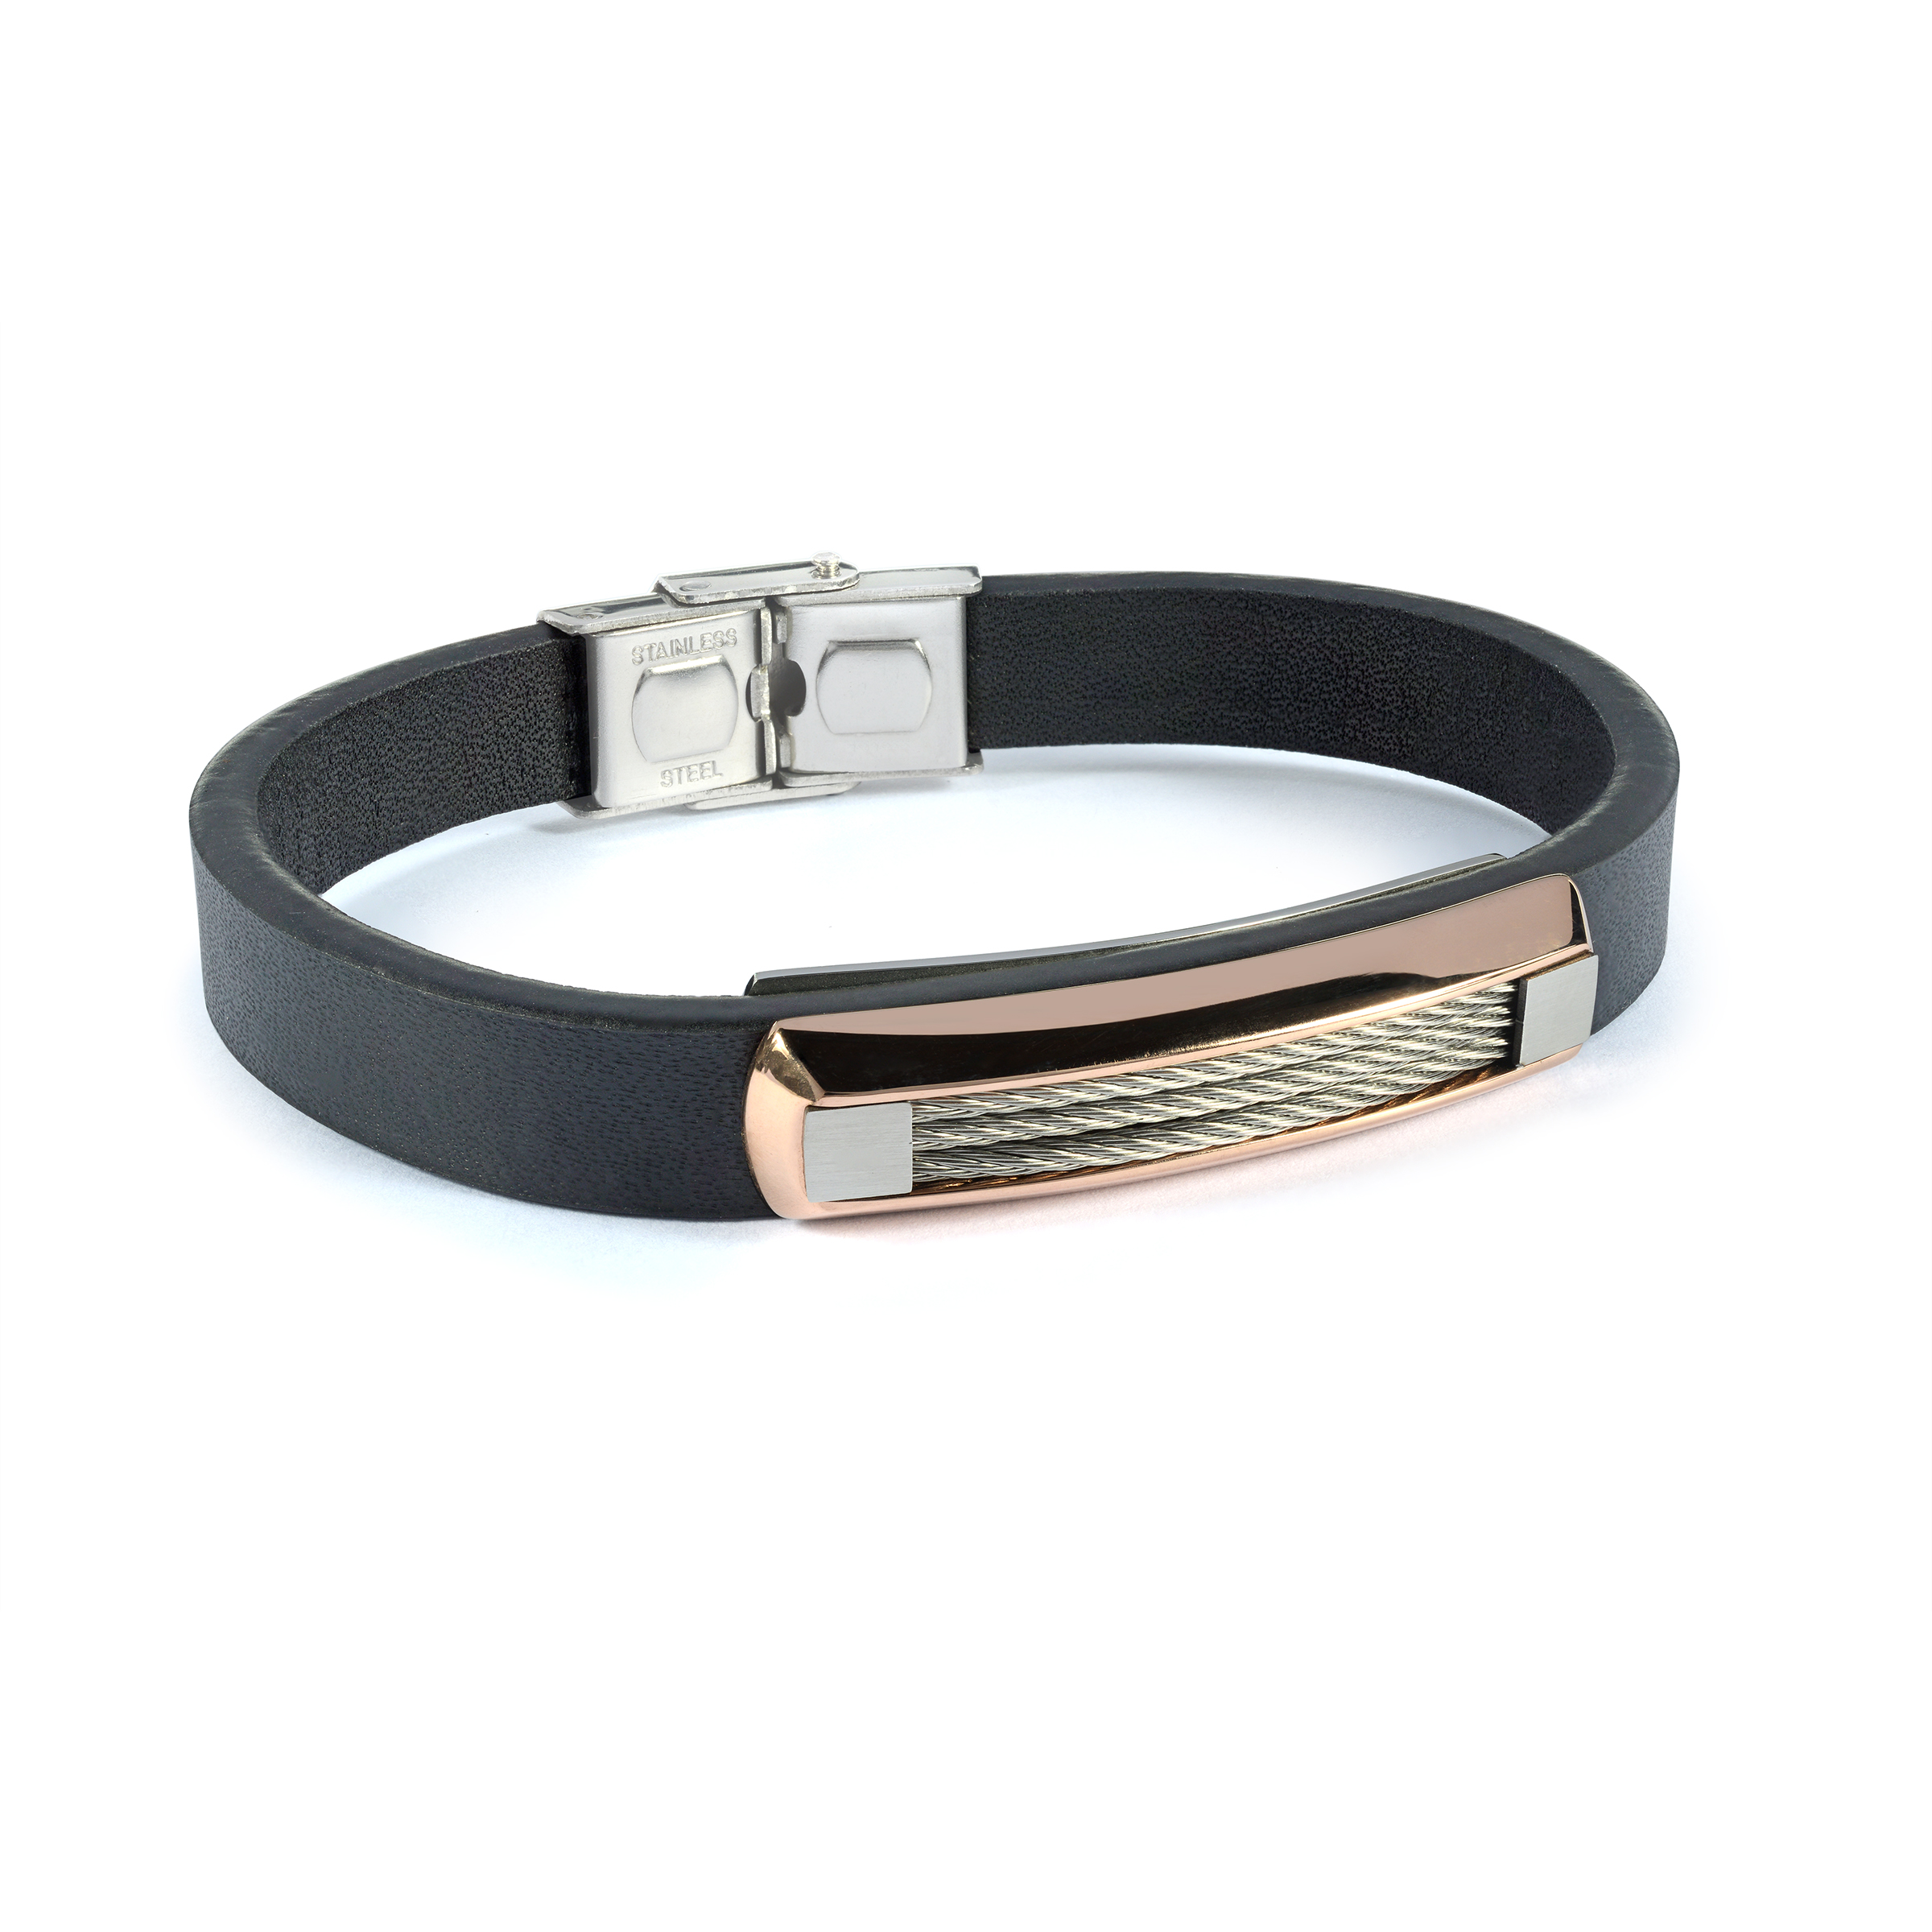 Leather bracelet - 2 tone Stainless steel & Cables